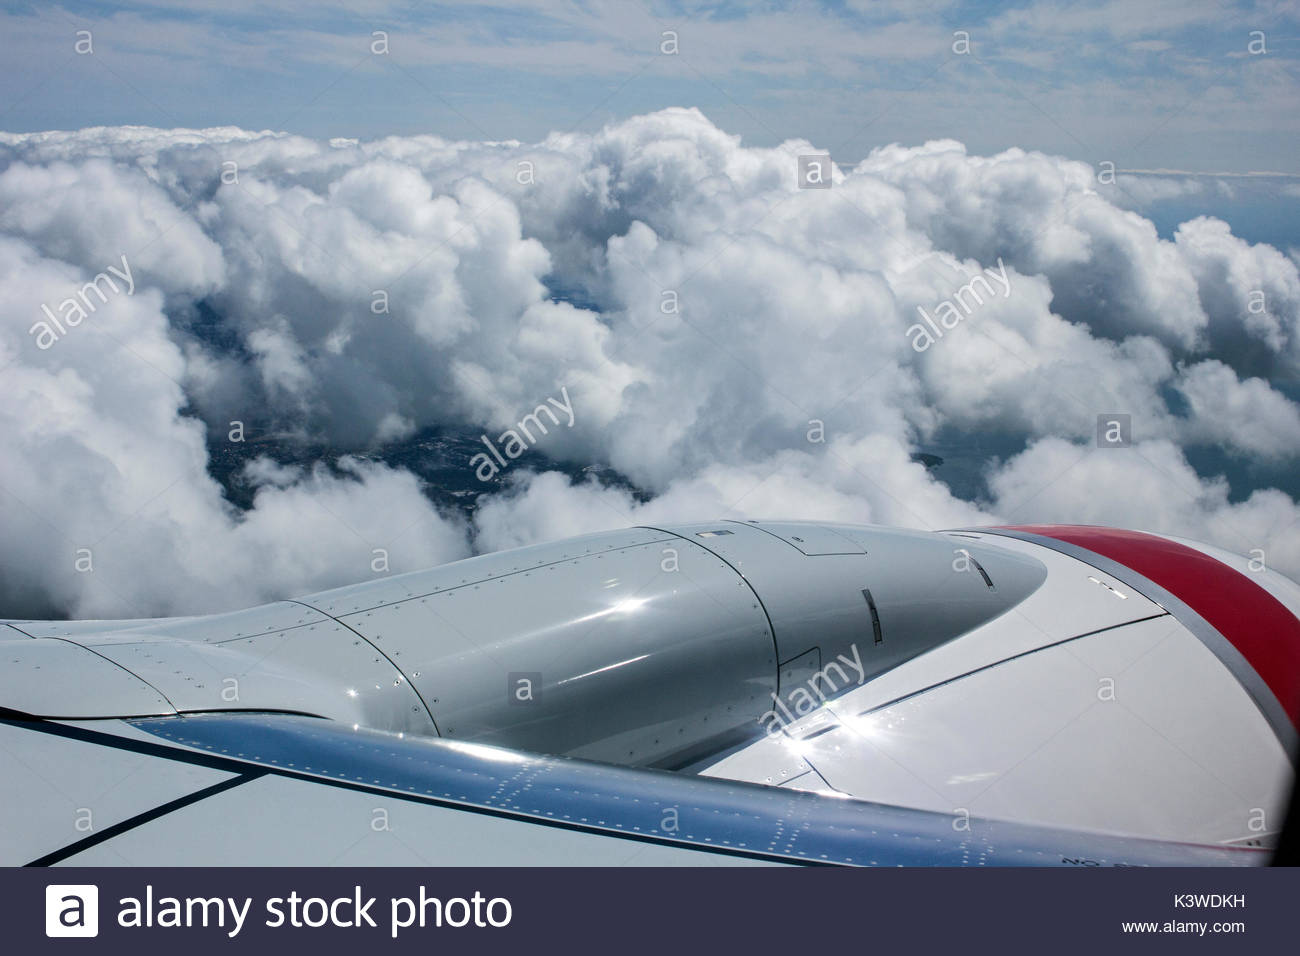 View looking over the jet engine from the window of a commercial airliner during descent. - Stock Image